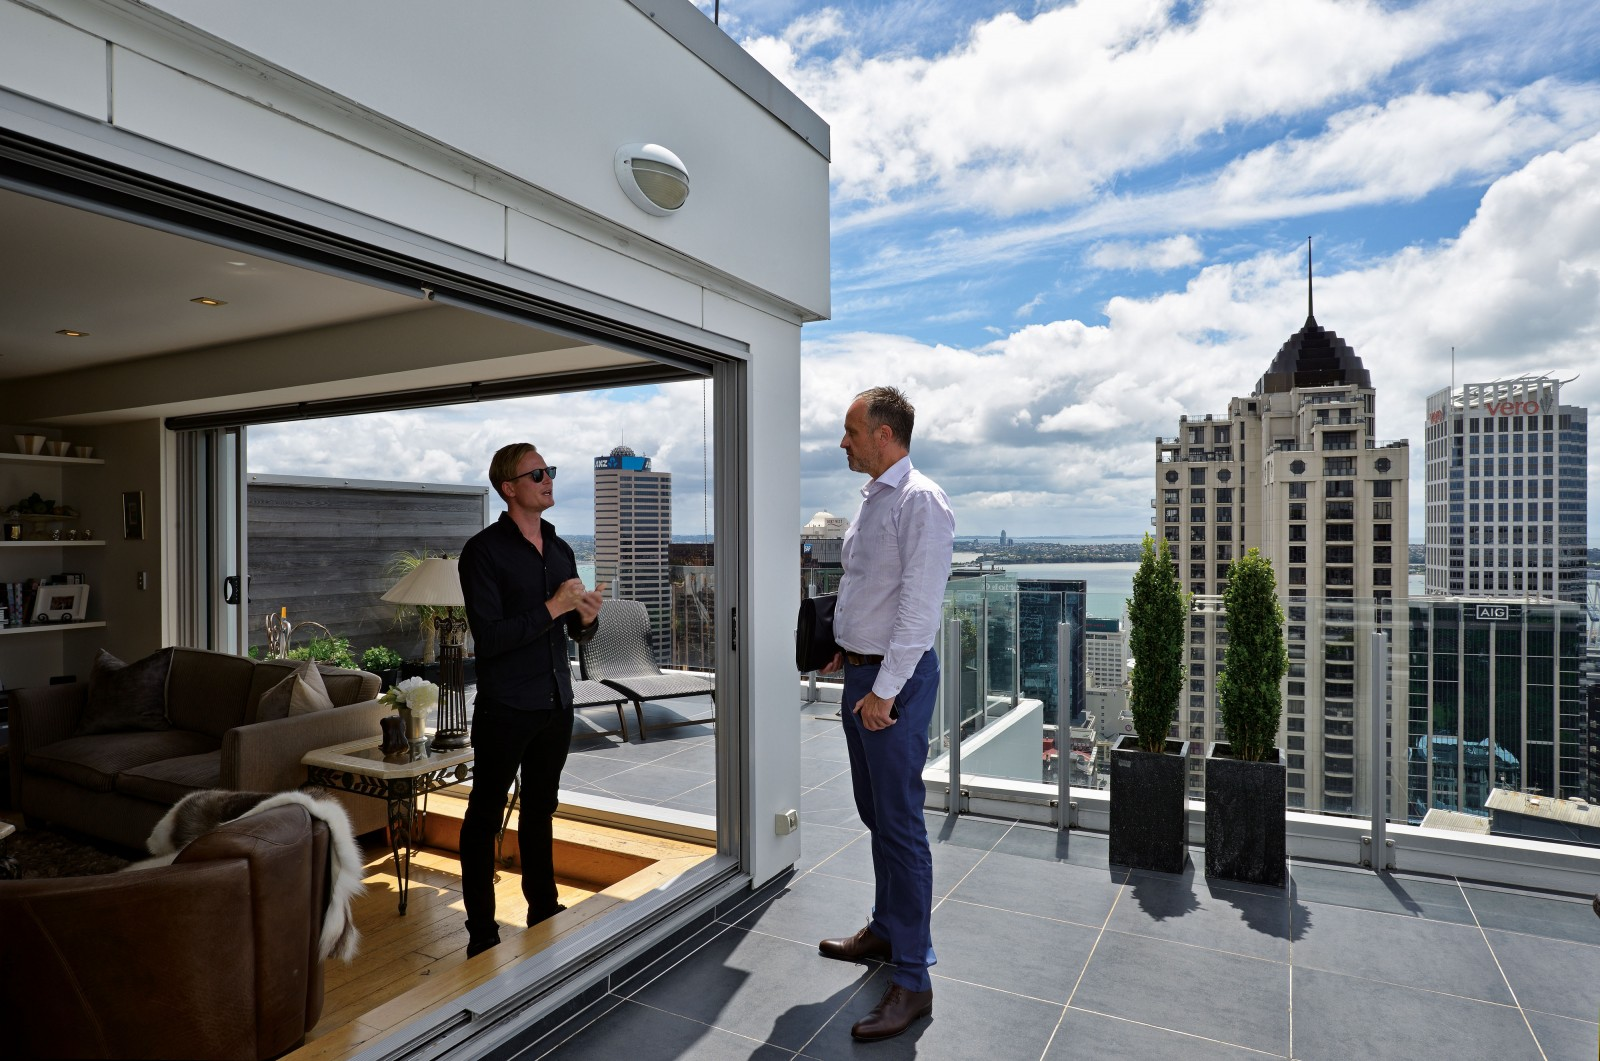 The move of affluent people toward the centre of the city over the past two decades has driven prices exponentially upward in central suburbs, to the benefit of real estate agents such as Blair Haddow, right, selling penthouse properties in Auckland's CBD for millions. It's a worldwide trend that has increased inner city populations 15-fold in two decades and pushed the poor to the periphery. This intensification has brought advantages to some, but also forced families further apart as younger generations can no longer afford to live close to their parents.